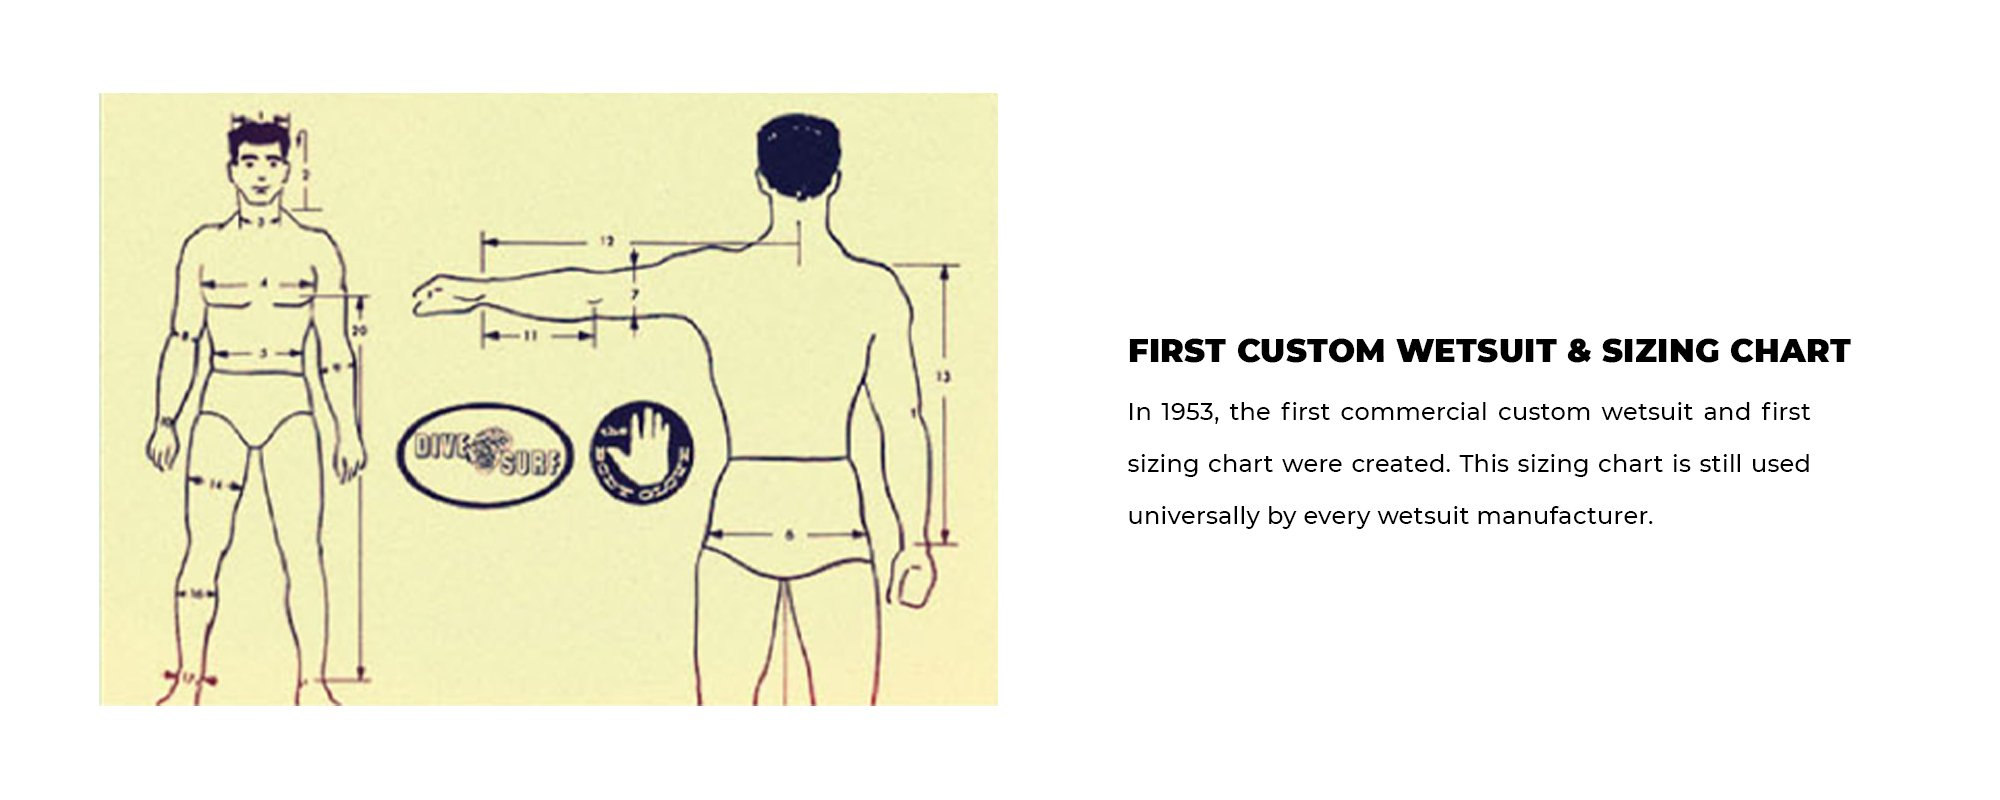 First Custom Wetsuit & Sizing Chart | In 1953, the first commercial custom wetsuit and first sizing chart were created. This sizing chart is still used universally by every wetsuit manufacturer.